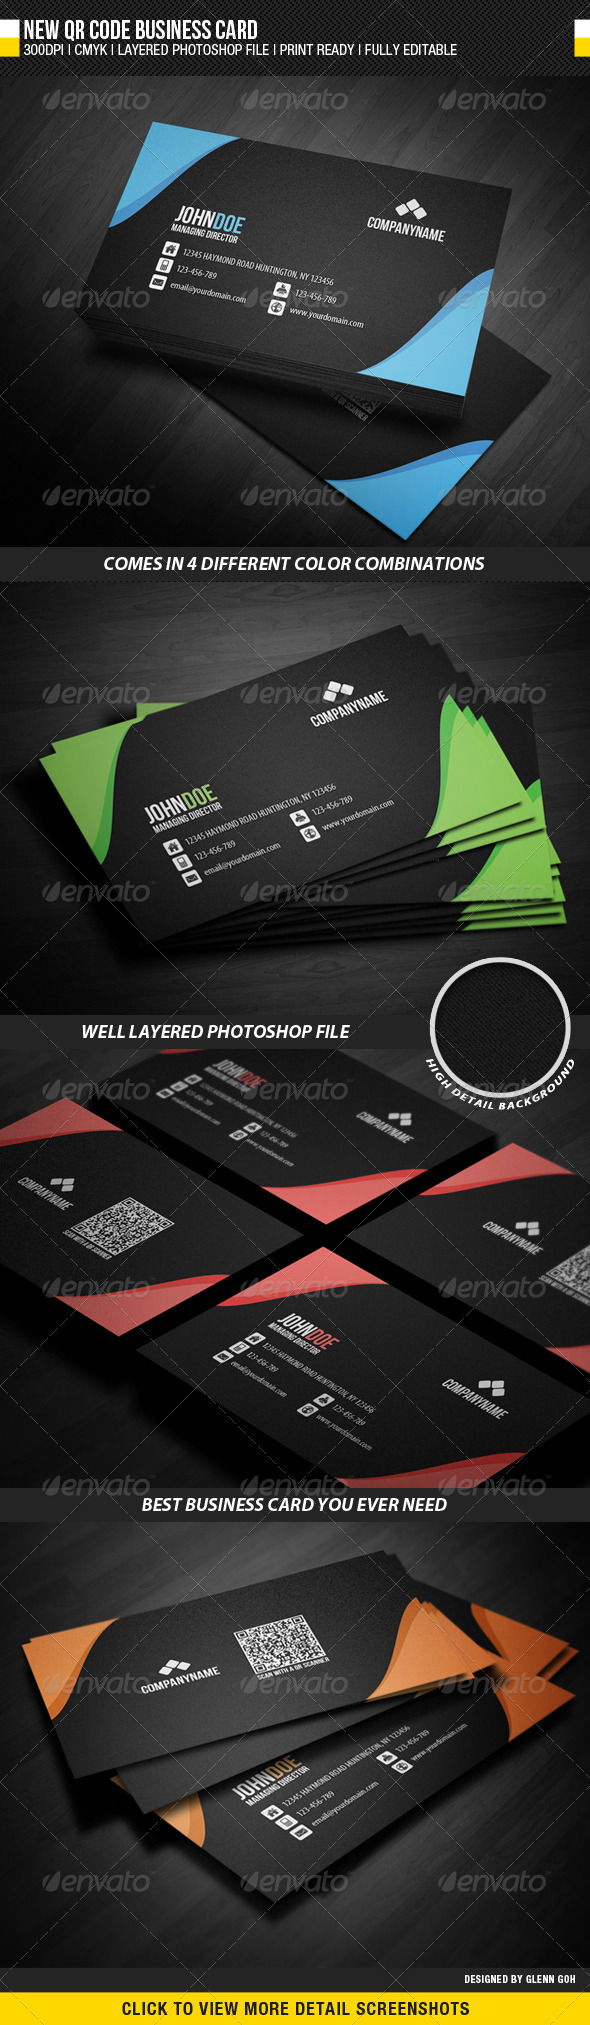 GraphicRiver New QR Code Business Card 2512920